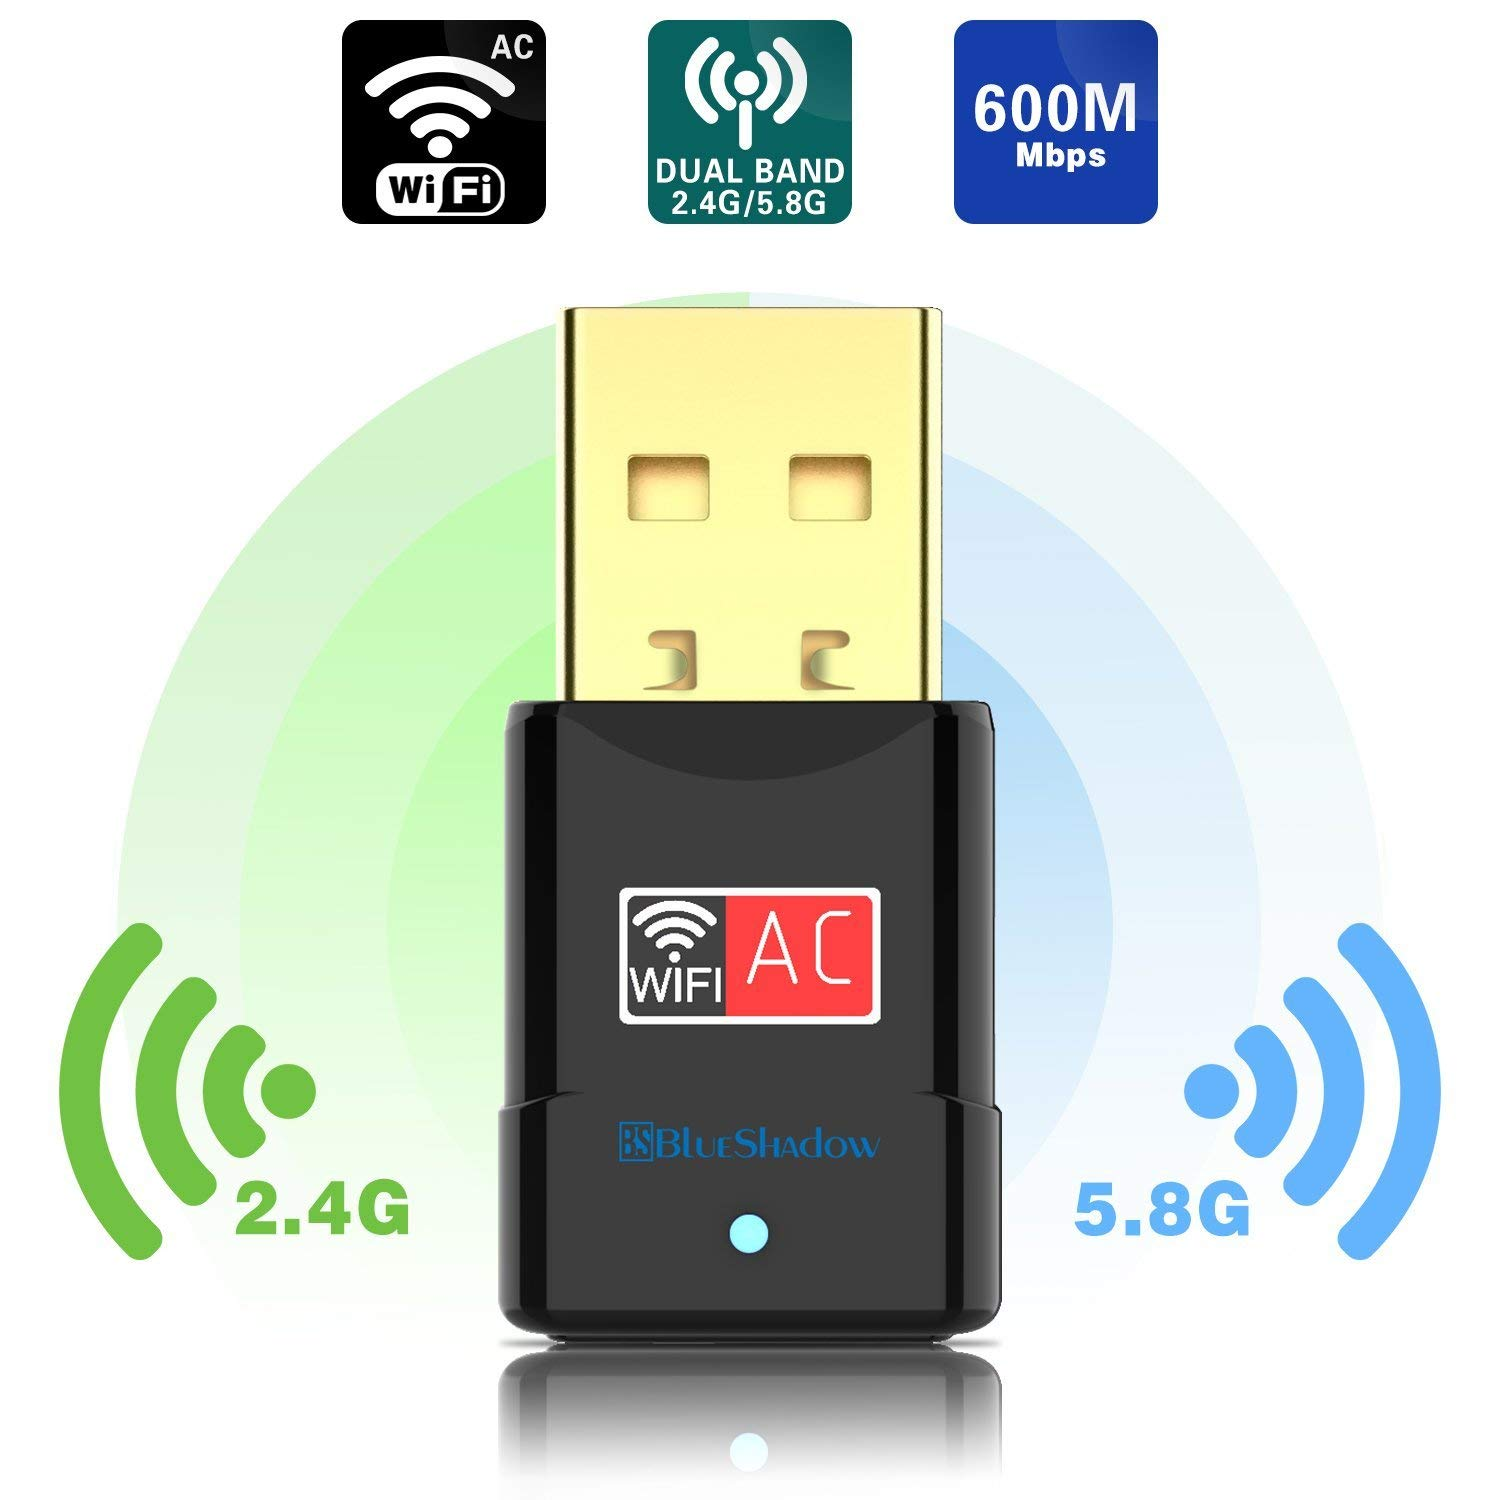 6 best usb wifi adapters 3 6 Best USB WiFi Adapters - Best WiFi Adapters for Laptops and Desktop PCs